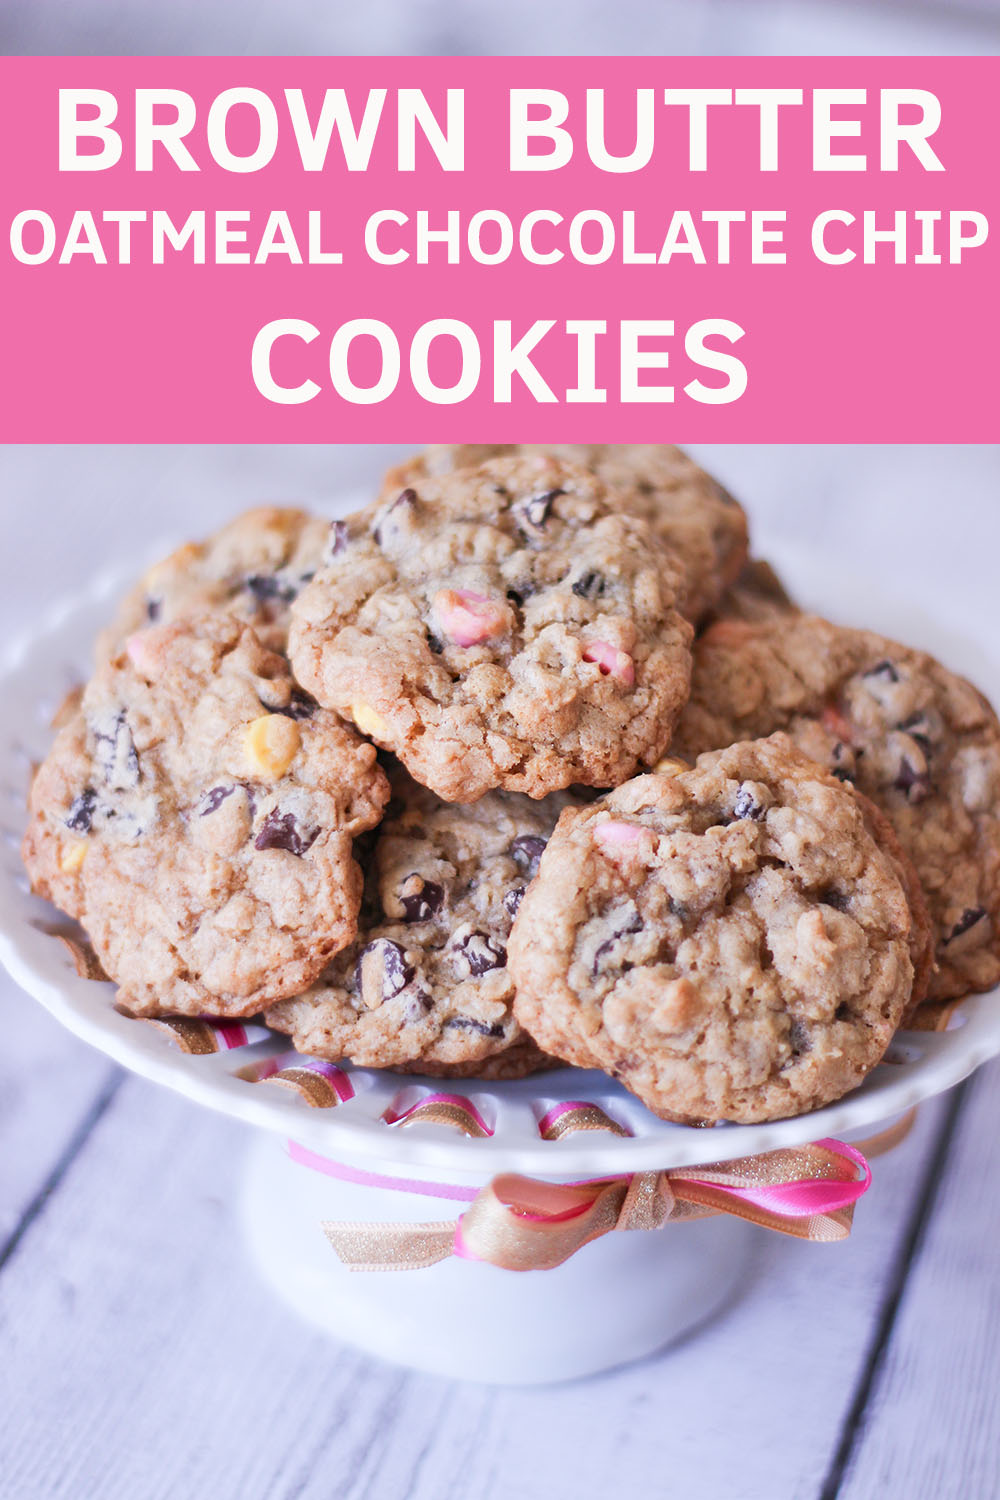 Beautiful, moist and chewy brown butter oatmeal chocolate chip cookies with springtime colored chocolate chips for Easter.